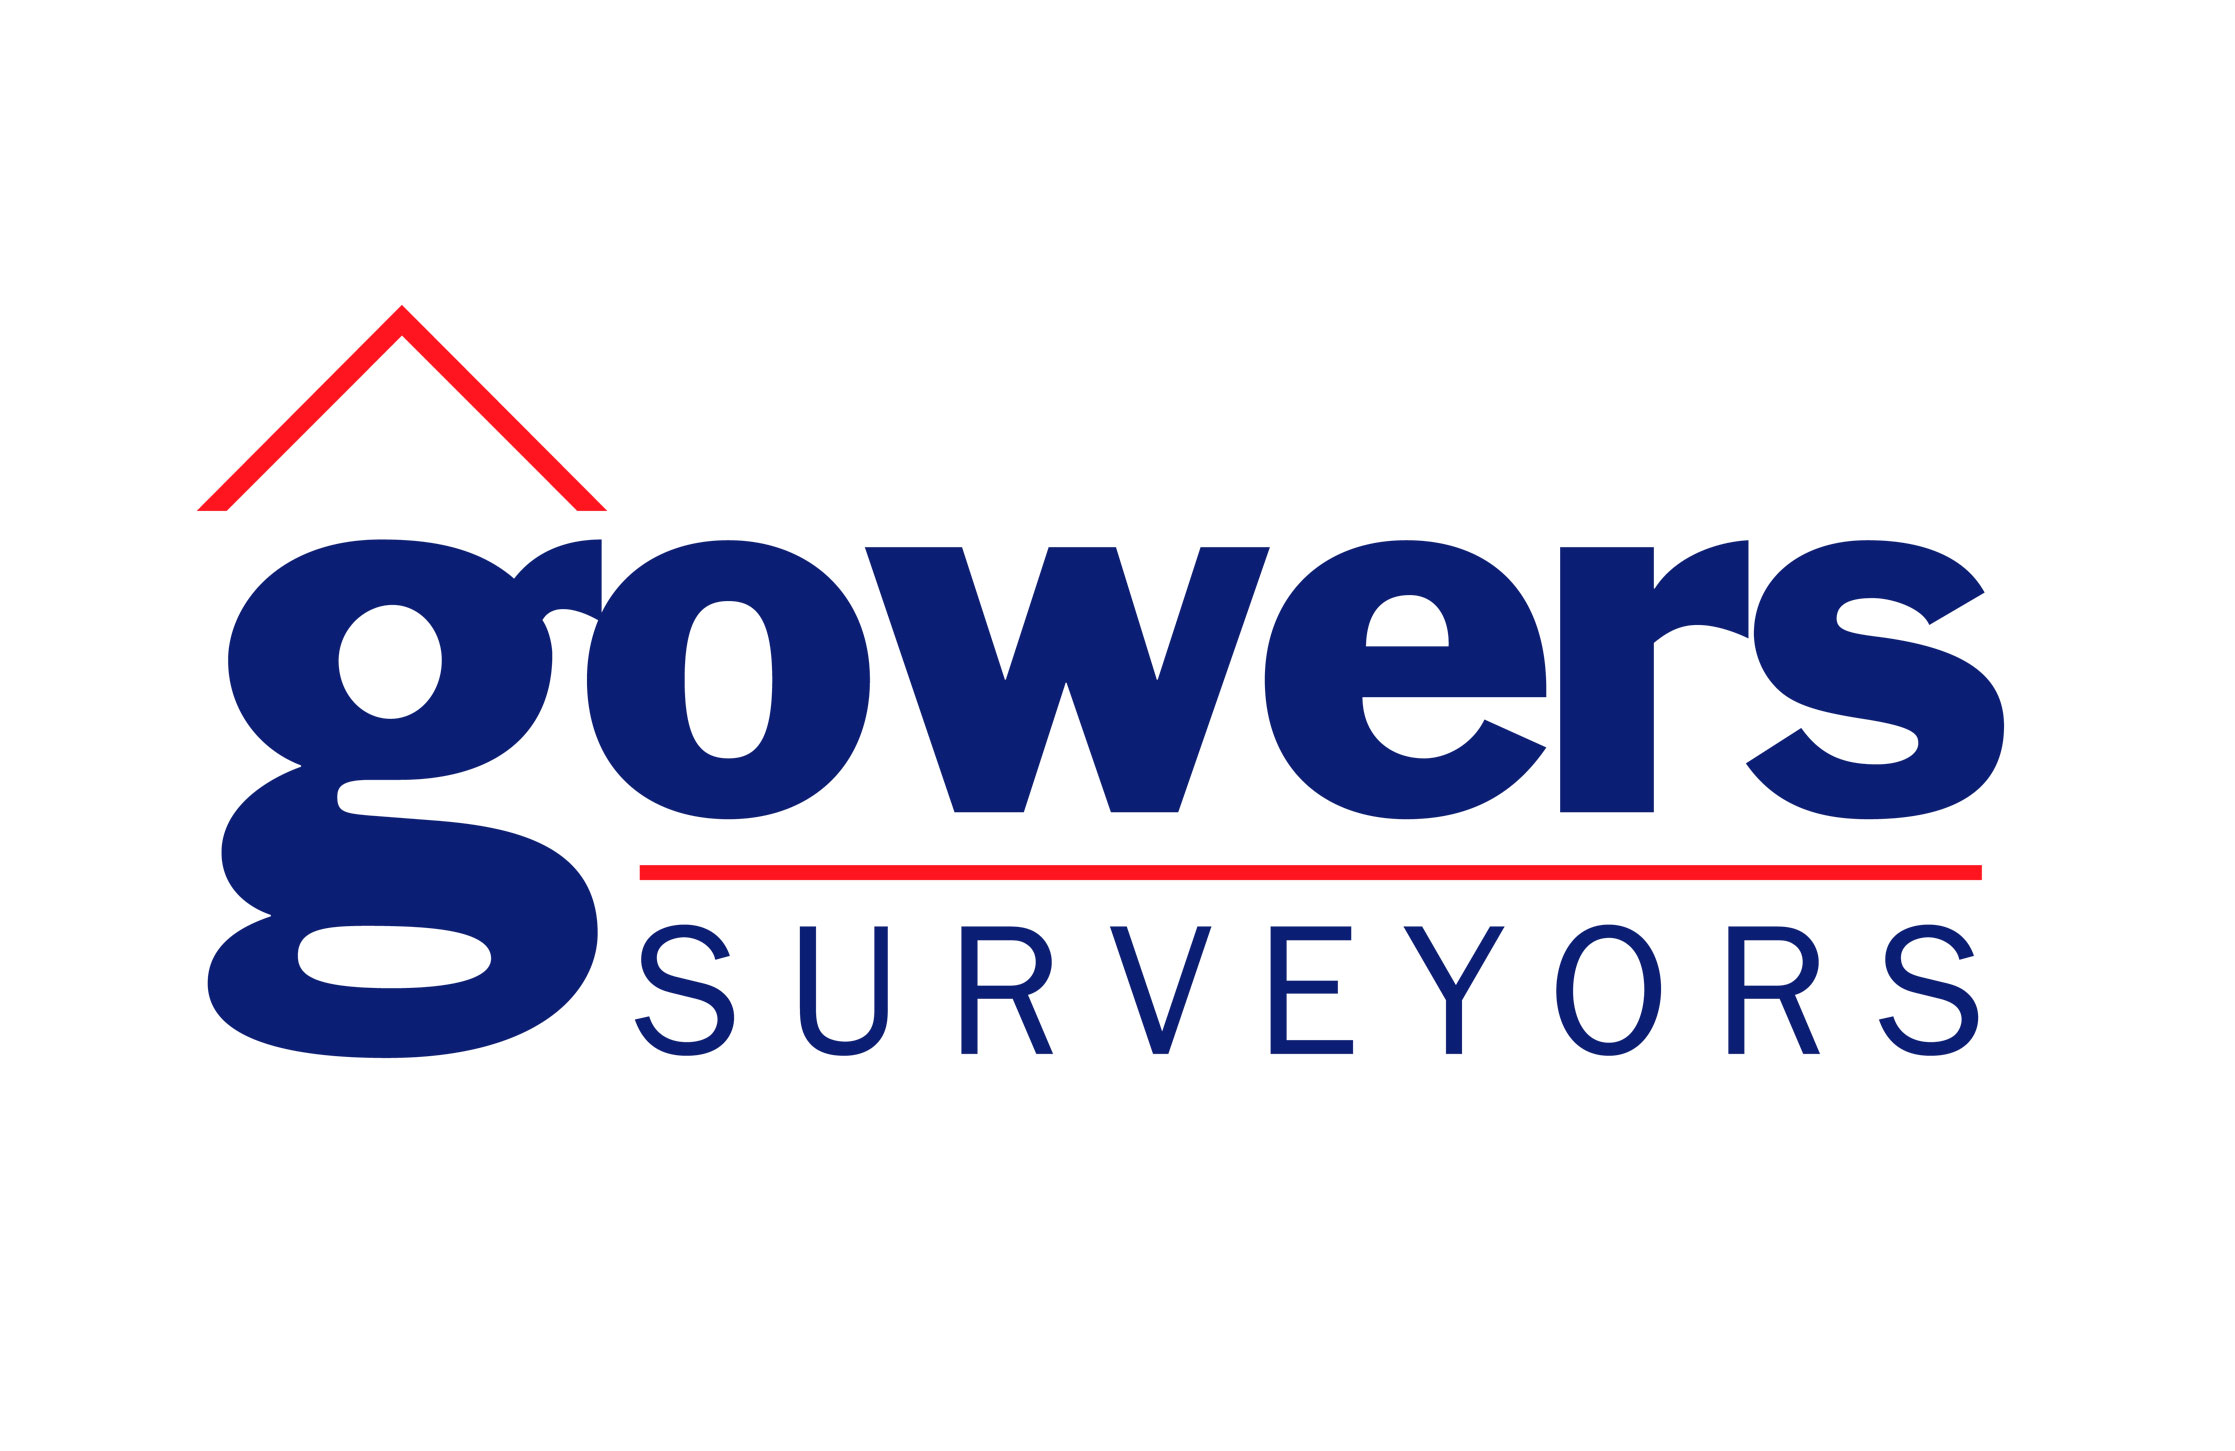 Gowers Surveyors Corporate Logo